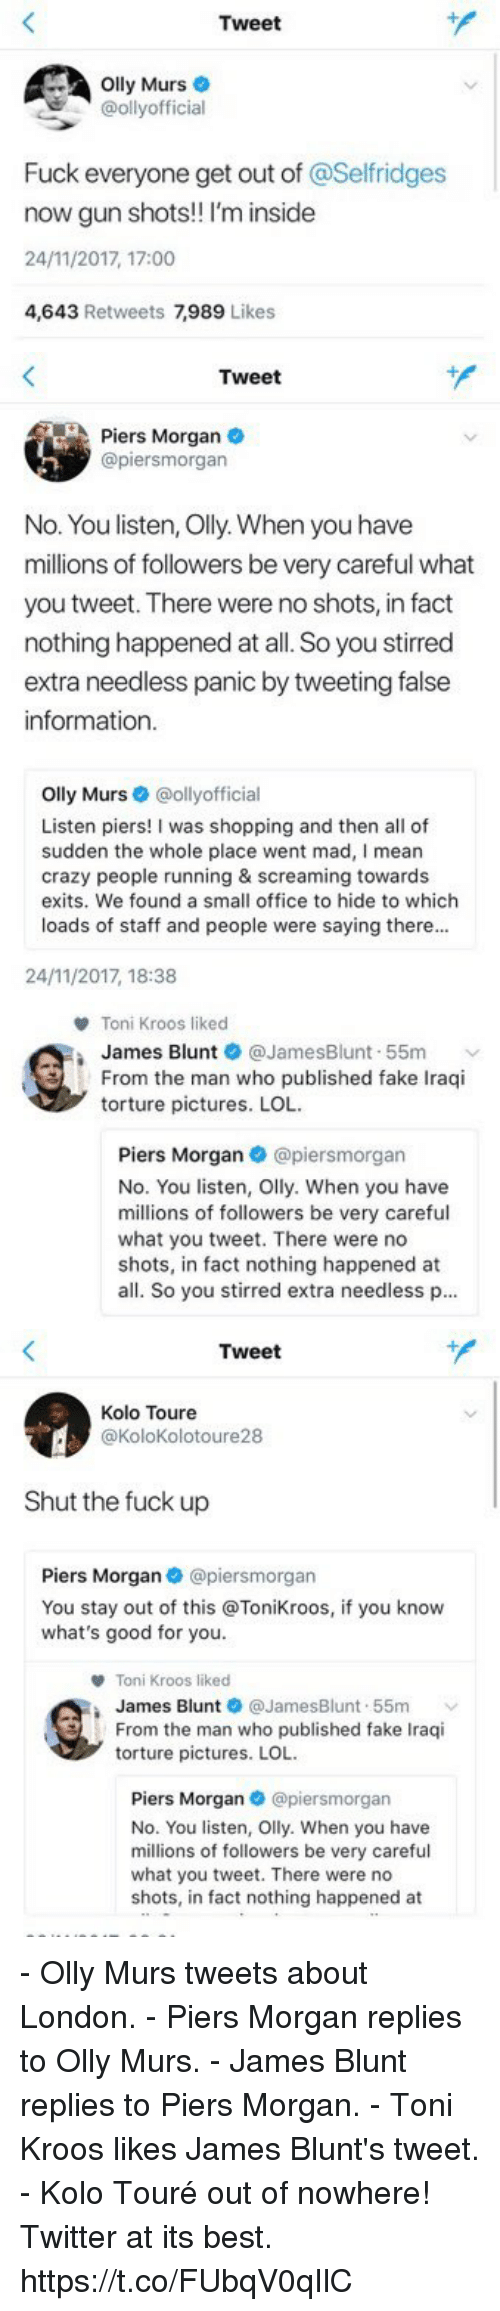 crazy people: Tweet  lly Murs  @ollyofficial  Fuck everyone get out of @Selfridges  now gun shots! I'm inside  24/11/2017, 17:00  4,643 Retweets 7,989 Lik   Tweet  Piers Morgan  @piersmorgan  No. You listen, Olly. When you have  millions of followers be very careful what  you tweet. There were no shots, in fact  nothing happened at all. So you stirred  extra needless panic by tweeting false  information  Olly Murs·@ollyofficial  Listen piers! I was shopping and then all of  sudden the whole place went mad, I mean  crazy people running & screaming towards  exits. We found a small office to hide to which  loads of staff and people were saying there..  24/11/2017, 18:38   Toni Kroos liked  James Blunt ● @JamesBlunt-55m  From the man who published fake Iraqi  torture pictures. LOL  Piers Morgan@piersmorgan  No. You listen, Olly. When you have  millions of followers be very careful  what you tweet. There were no  shots, in fact nothing happened at  all. So you stirred extra needless p...   Tweet  Kolo Toure  @KoloKolotoure28  Shut the fuck up  Piers Morgan @piersmorgan  You stay out of this @Tonikroos, if you know  what's good for you.  Toni Kroos liked  James Blunt @JamesBlunt-55m ﹀  From the man who published fake Iraqi  torture pictures. LOL  Piers Morgan @piersmorgan  No. You listen, Olly. When you have  millions of followers be very careful  what you tweet. There were no  shots, in fact nothing happened at - Olly Murs tweets about London. - Piers Morgan replies to Olly Murs. - James Blunt replies to Piers Morgan. - Toni Kroos likes James Blunt's tweet. - Kolo Touré out of nowhere!  Twitter at its best. https://t.co/FUbqV0qIlC